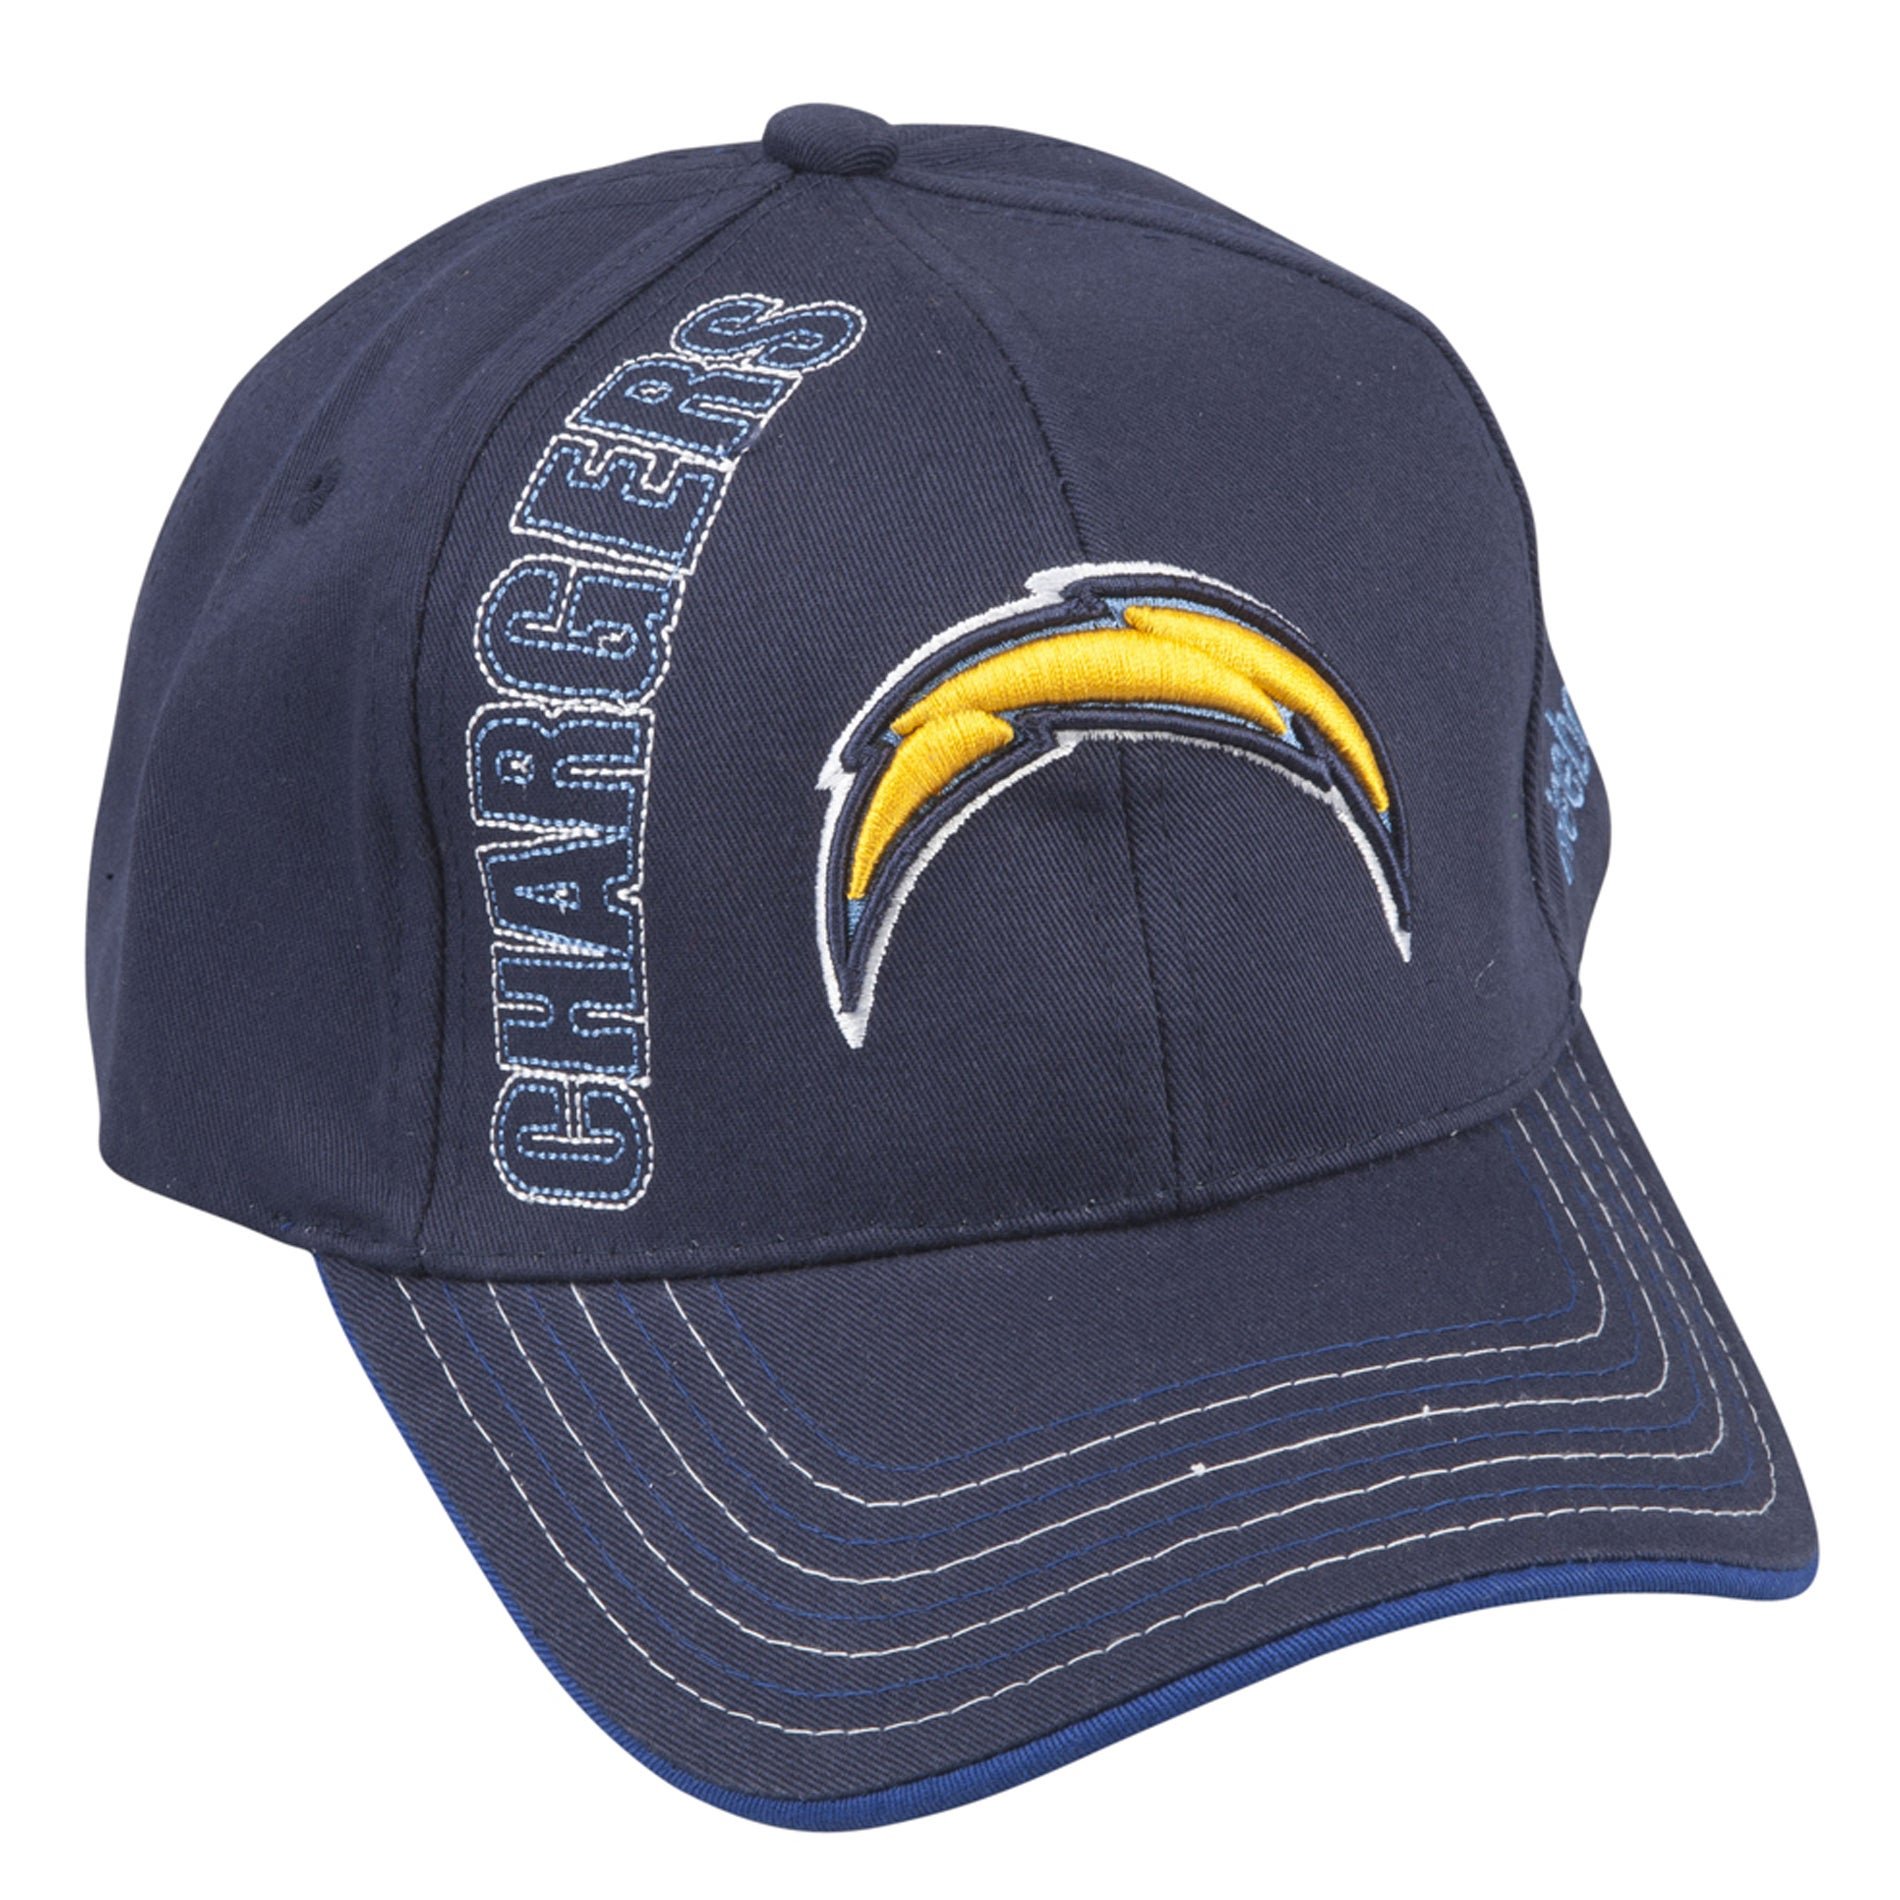 1085ed7ed9b Shop Reebok San Diego Chargers Yardage Hat - Free Shipping On Orders Over   45 - Overstock - 6393226